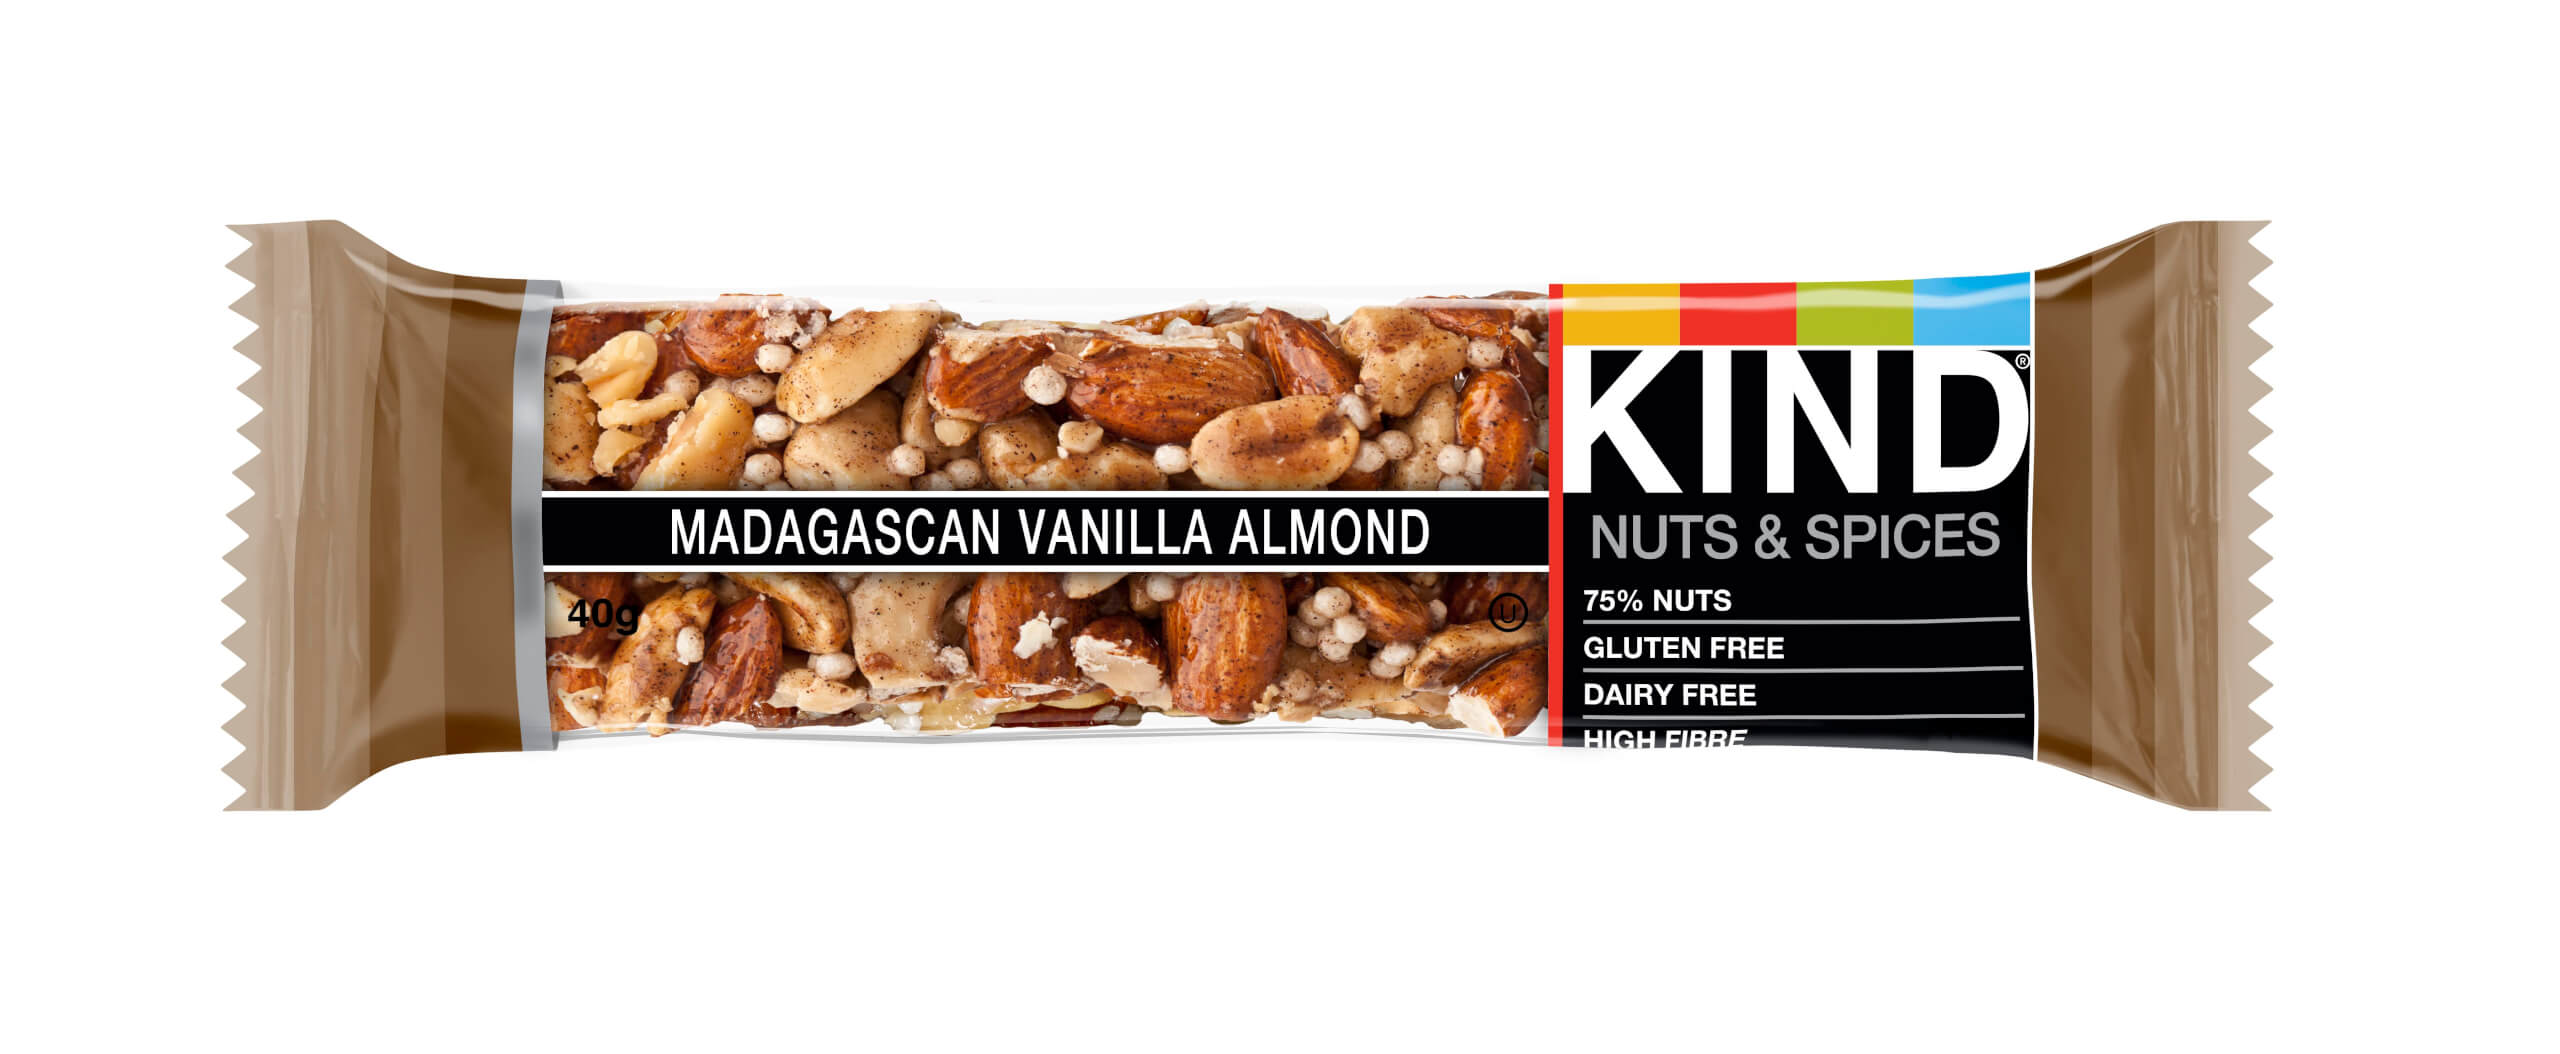 KIND Madagascan Vanilla Almond Bar